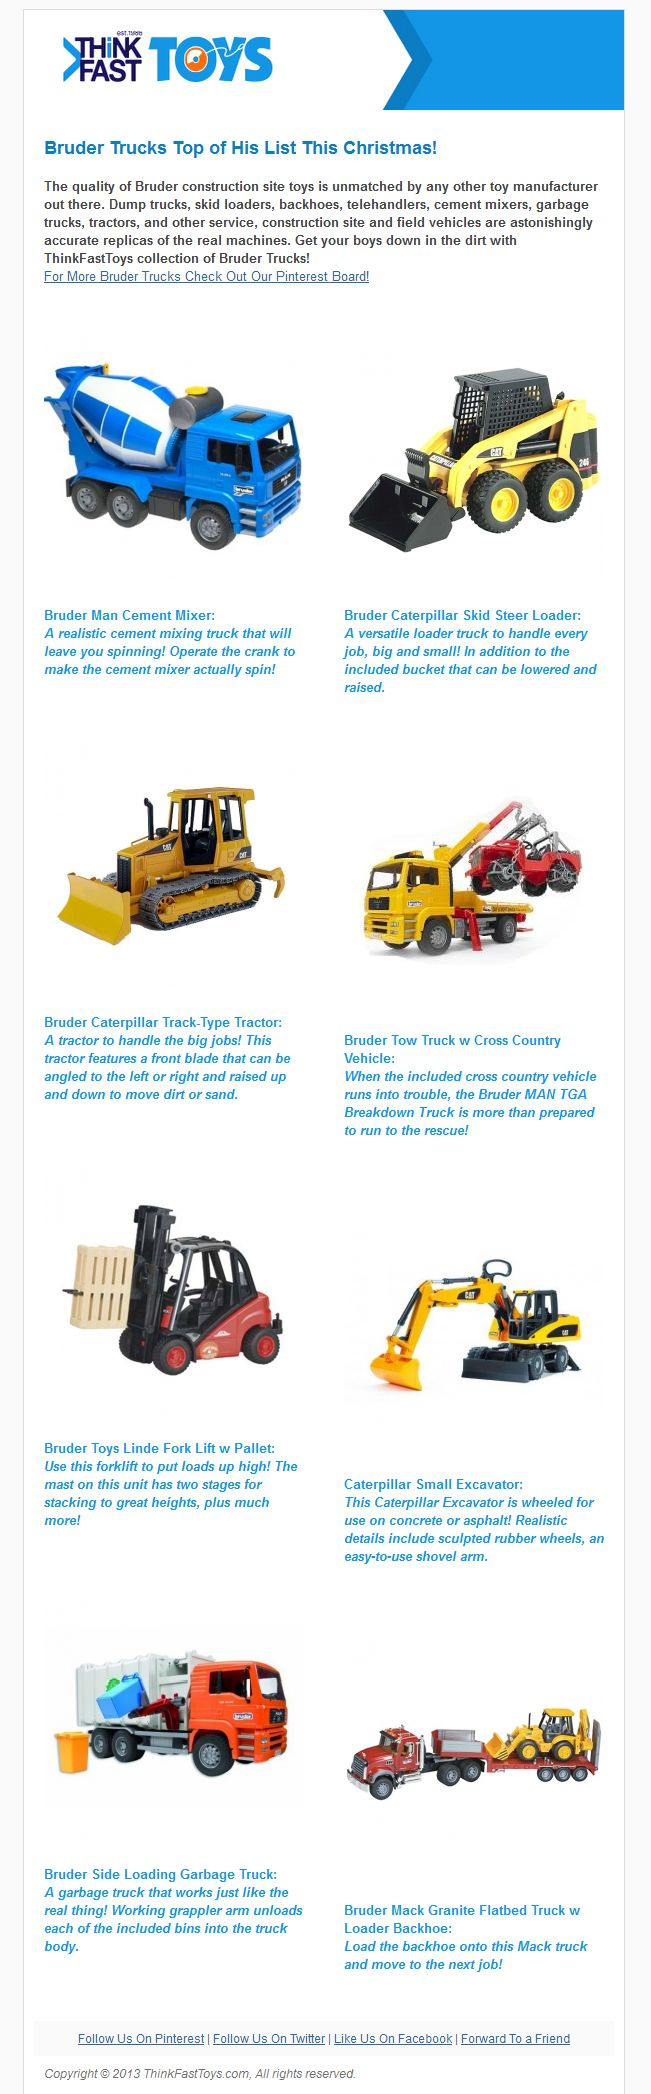 Construction Site Toys For Boys : Best images about bruder trucks on pinterest tow